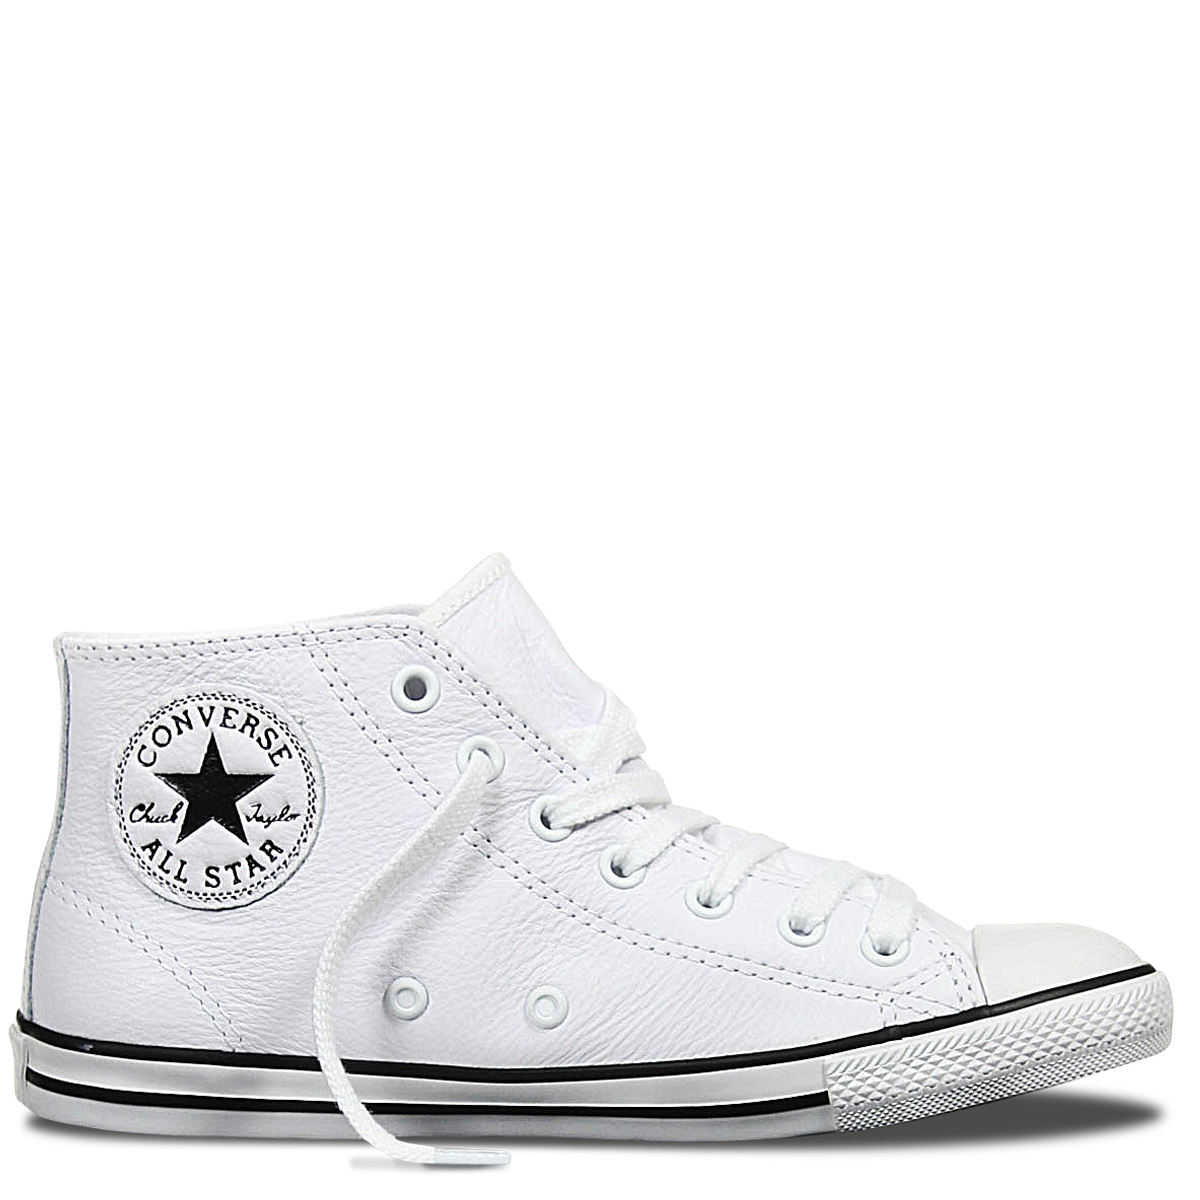 Chuck Taylor All Star Dainty Leather Mid White Converse Mid TopsWomens